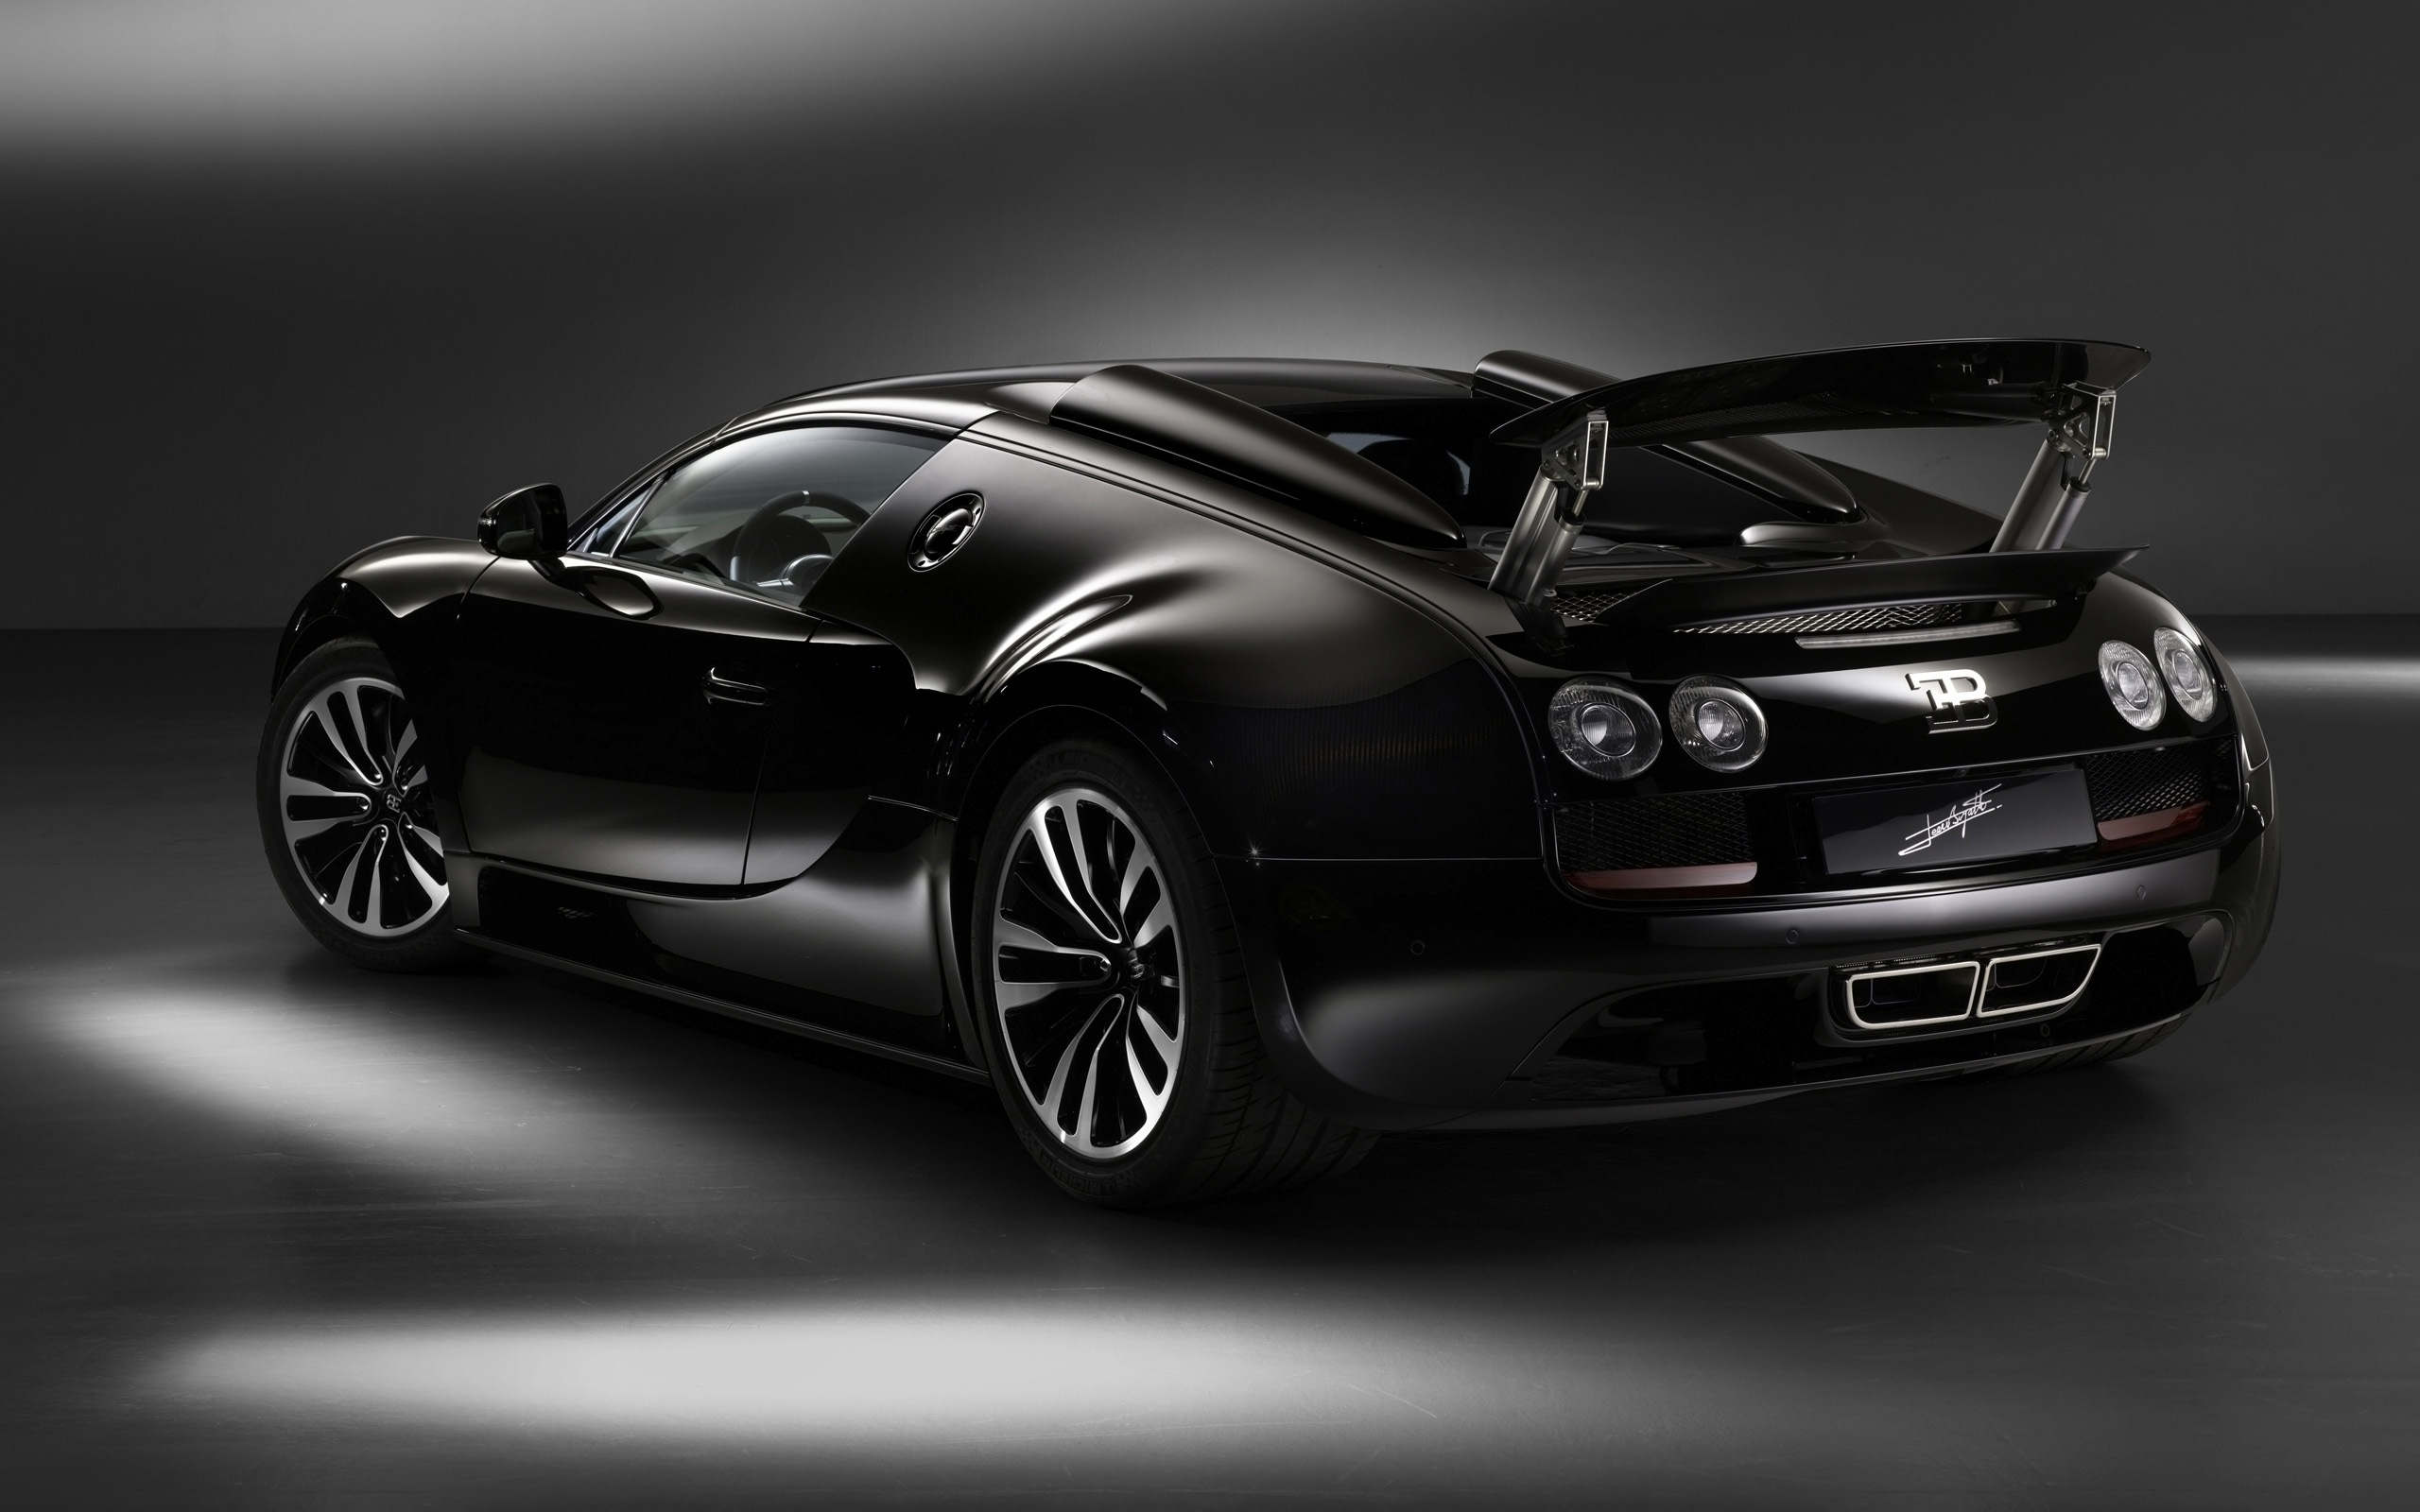 free hd bugatti wallpapers | page 2 of 3 | wallpaper.wiki